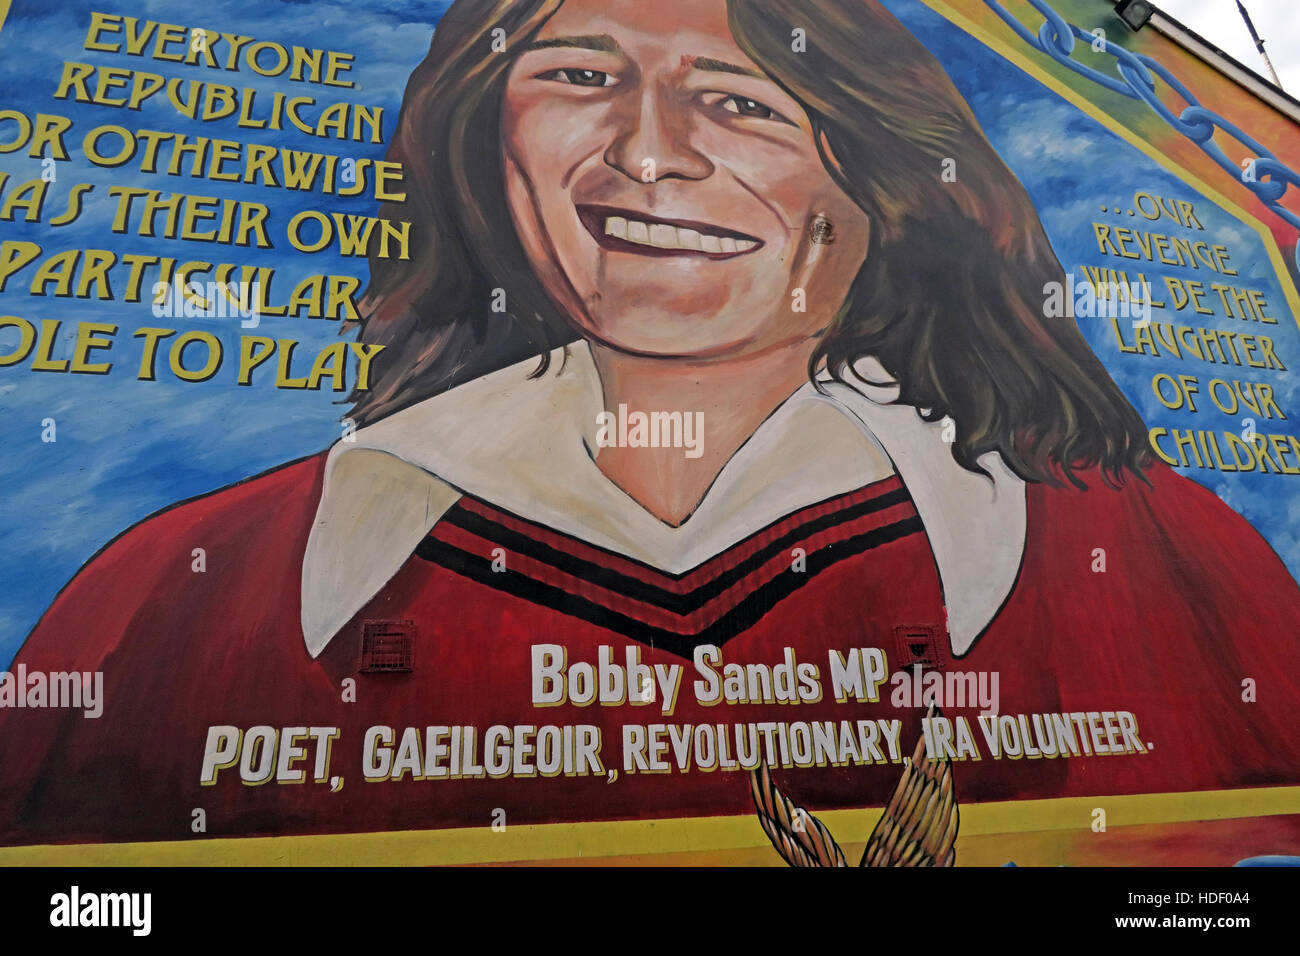 Everyone Republican. Belfast Falls Rd Mural- Bobby Sands MP, Poet,Gaeilgeoir,revolutionary,IRA Volunteer - Stock Image